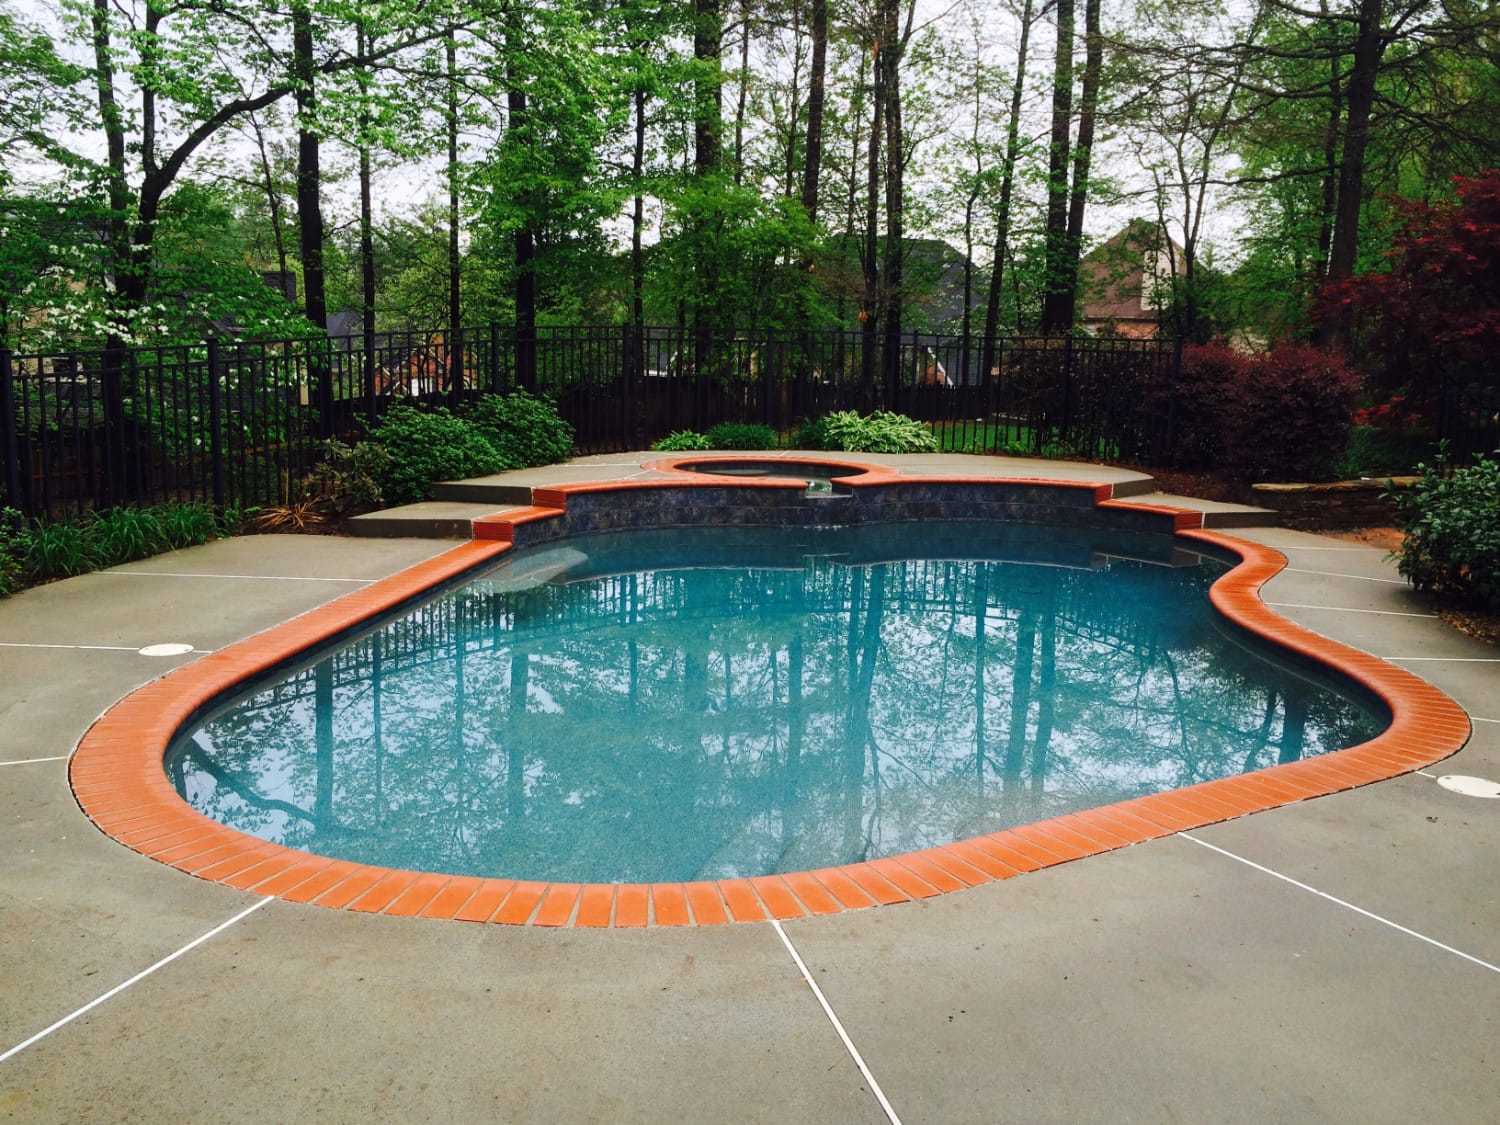 satin-matrix-northshore-caribbean-pool-finish-13